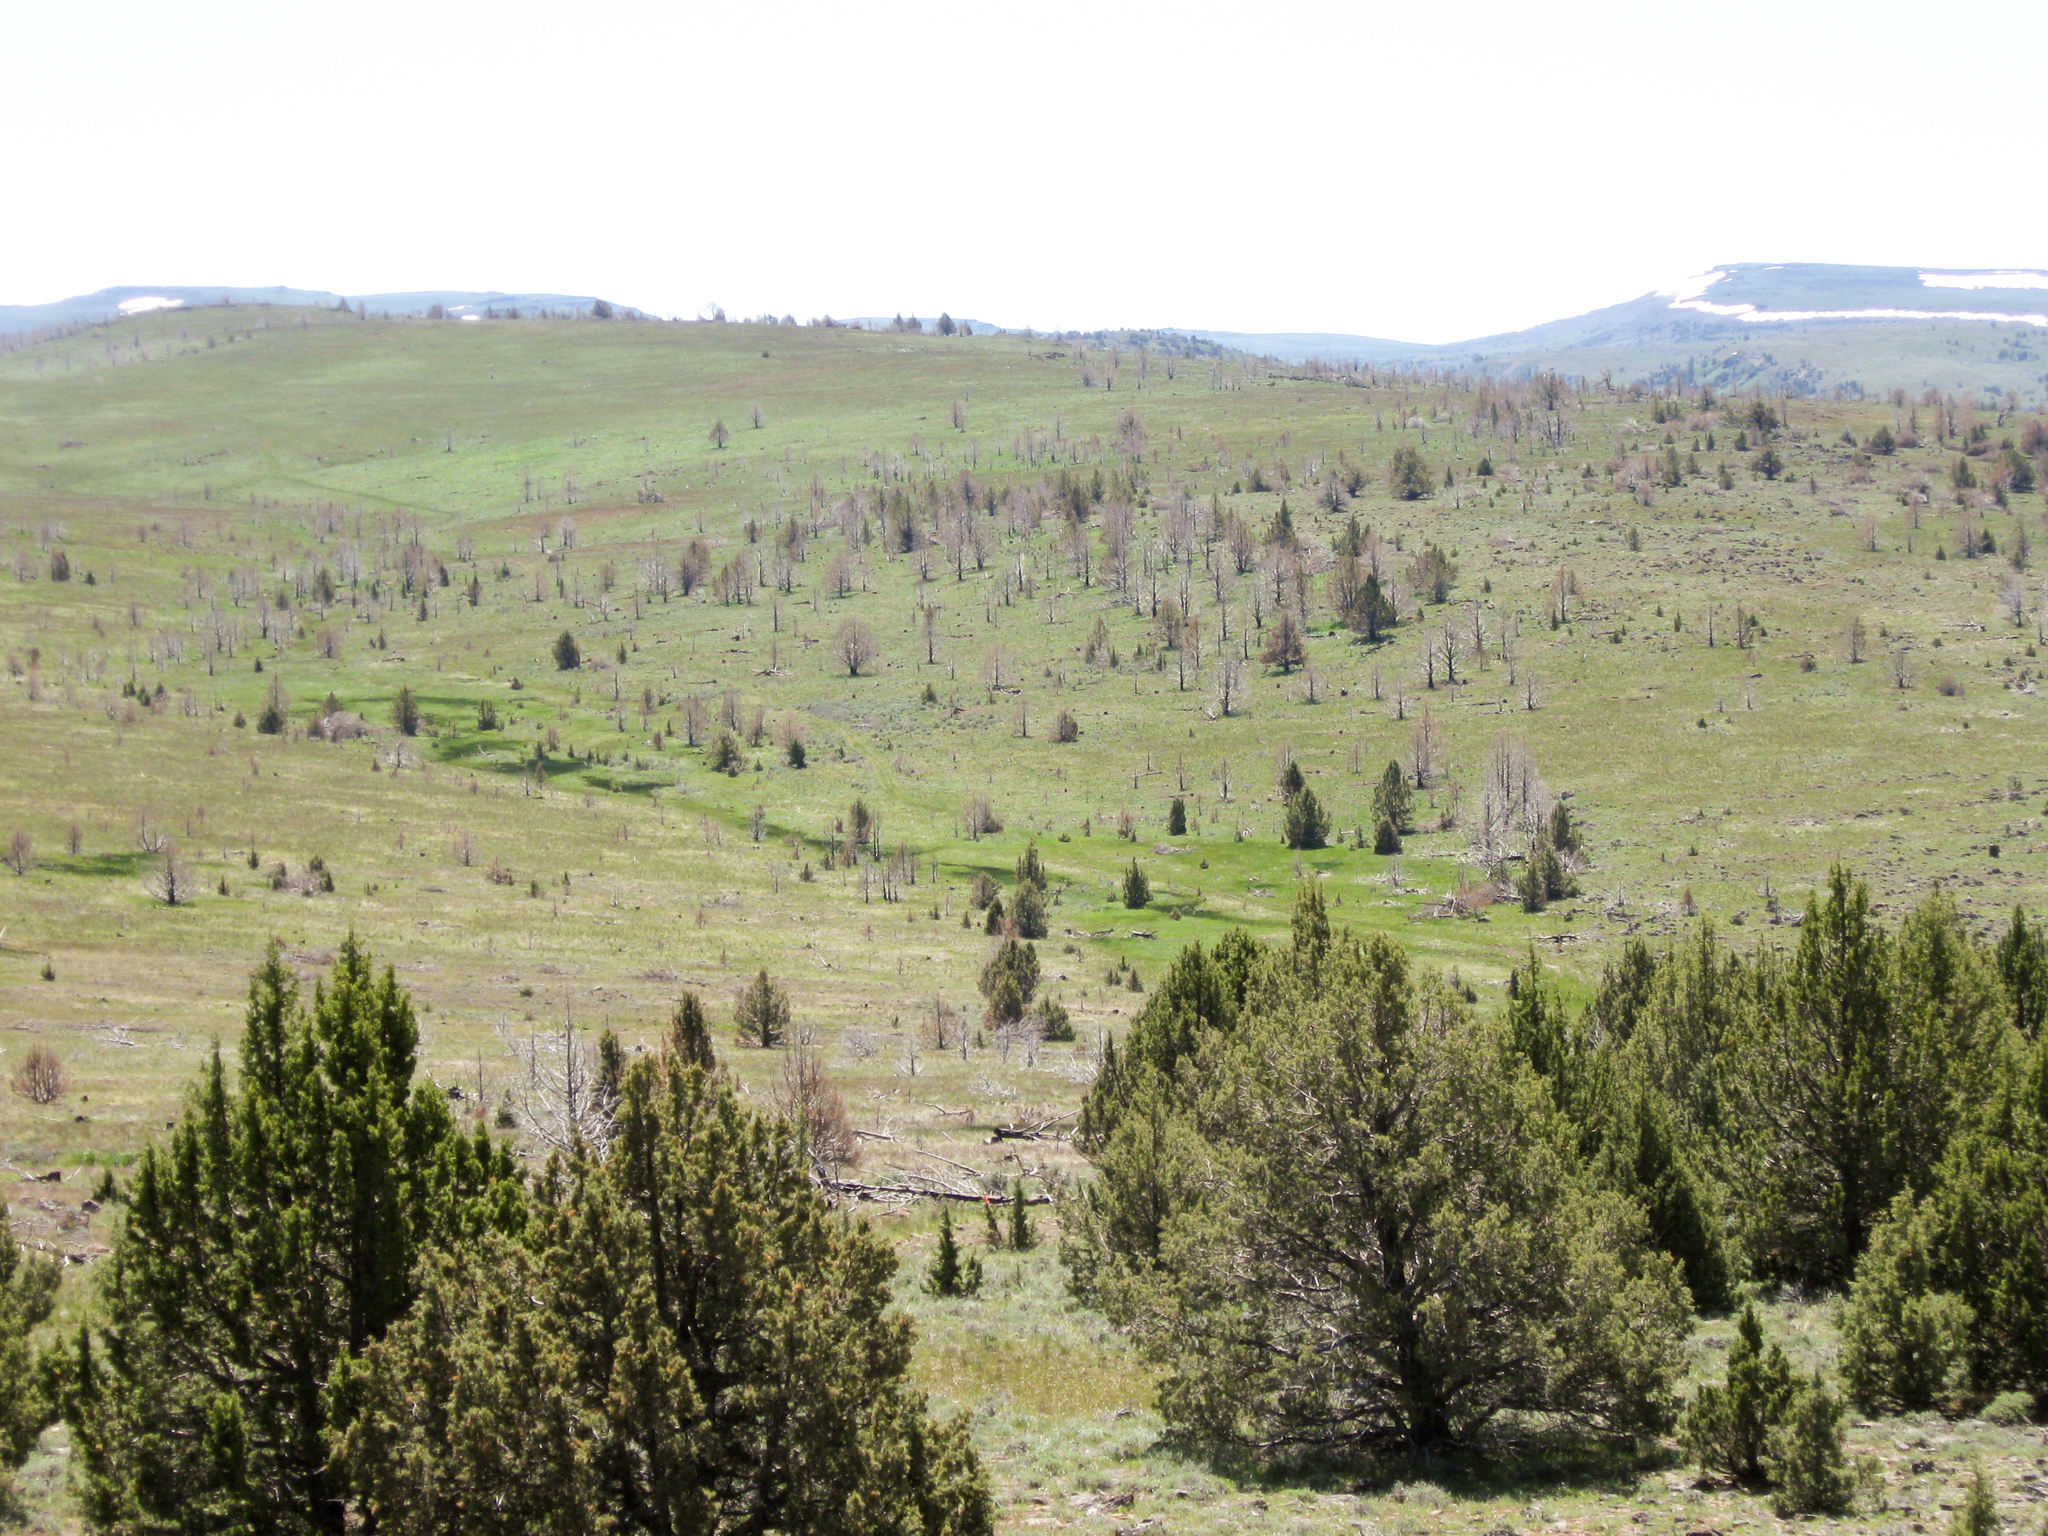 The sagebrush steppe ecosystem is well on its way to recovery in the Five Creeks area of eastern Oregon, just one year after a controlled burn passed through, clearing the land of young junipers. Photograph by Travis Miller